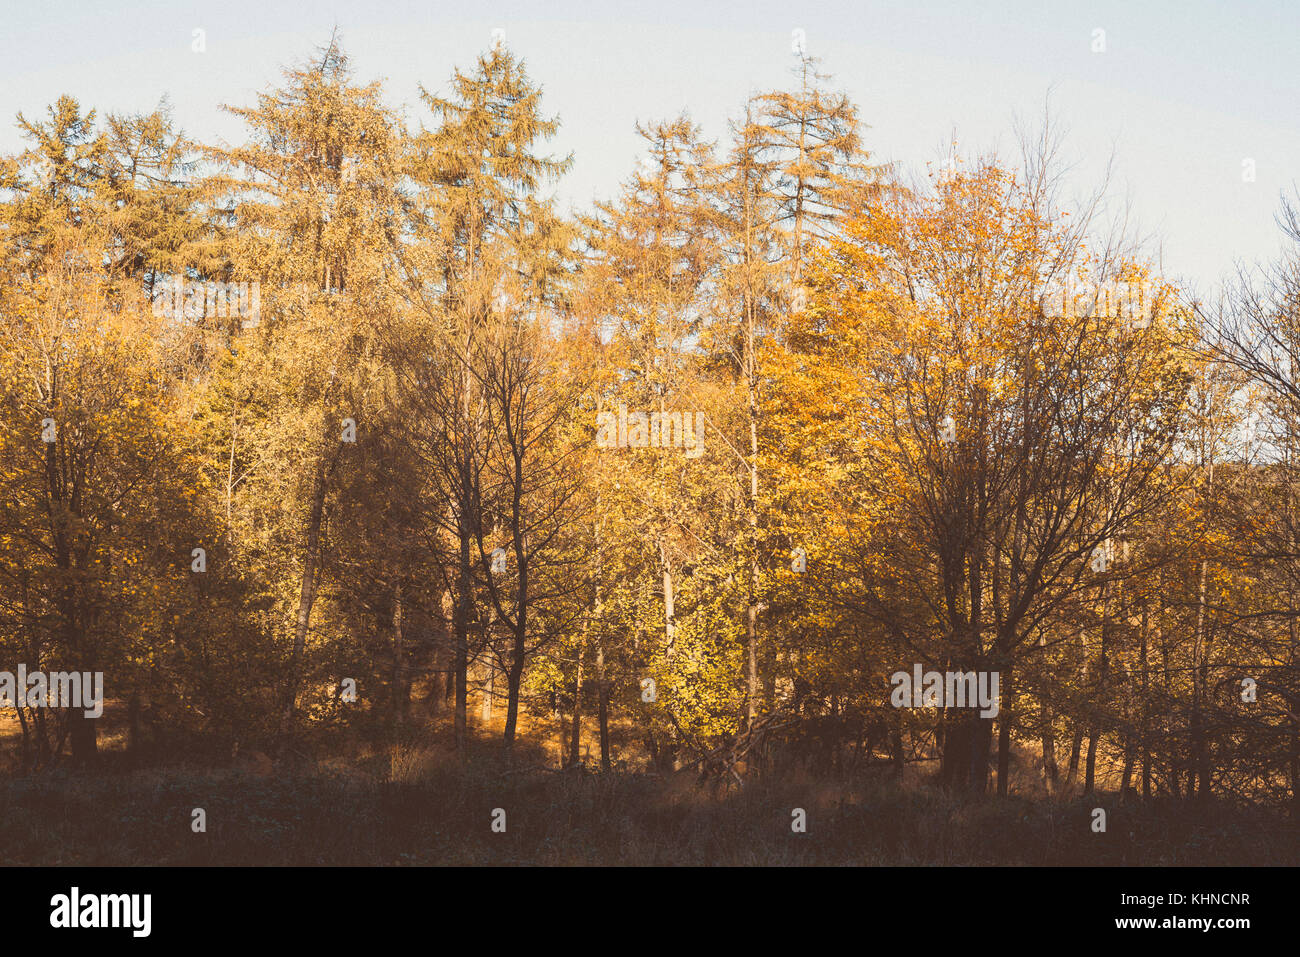 Autumn colors in a forest with tall trees in golden color in October - Stock Image